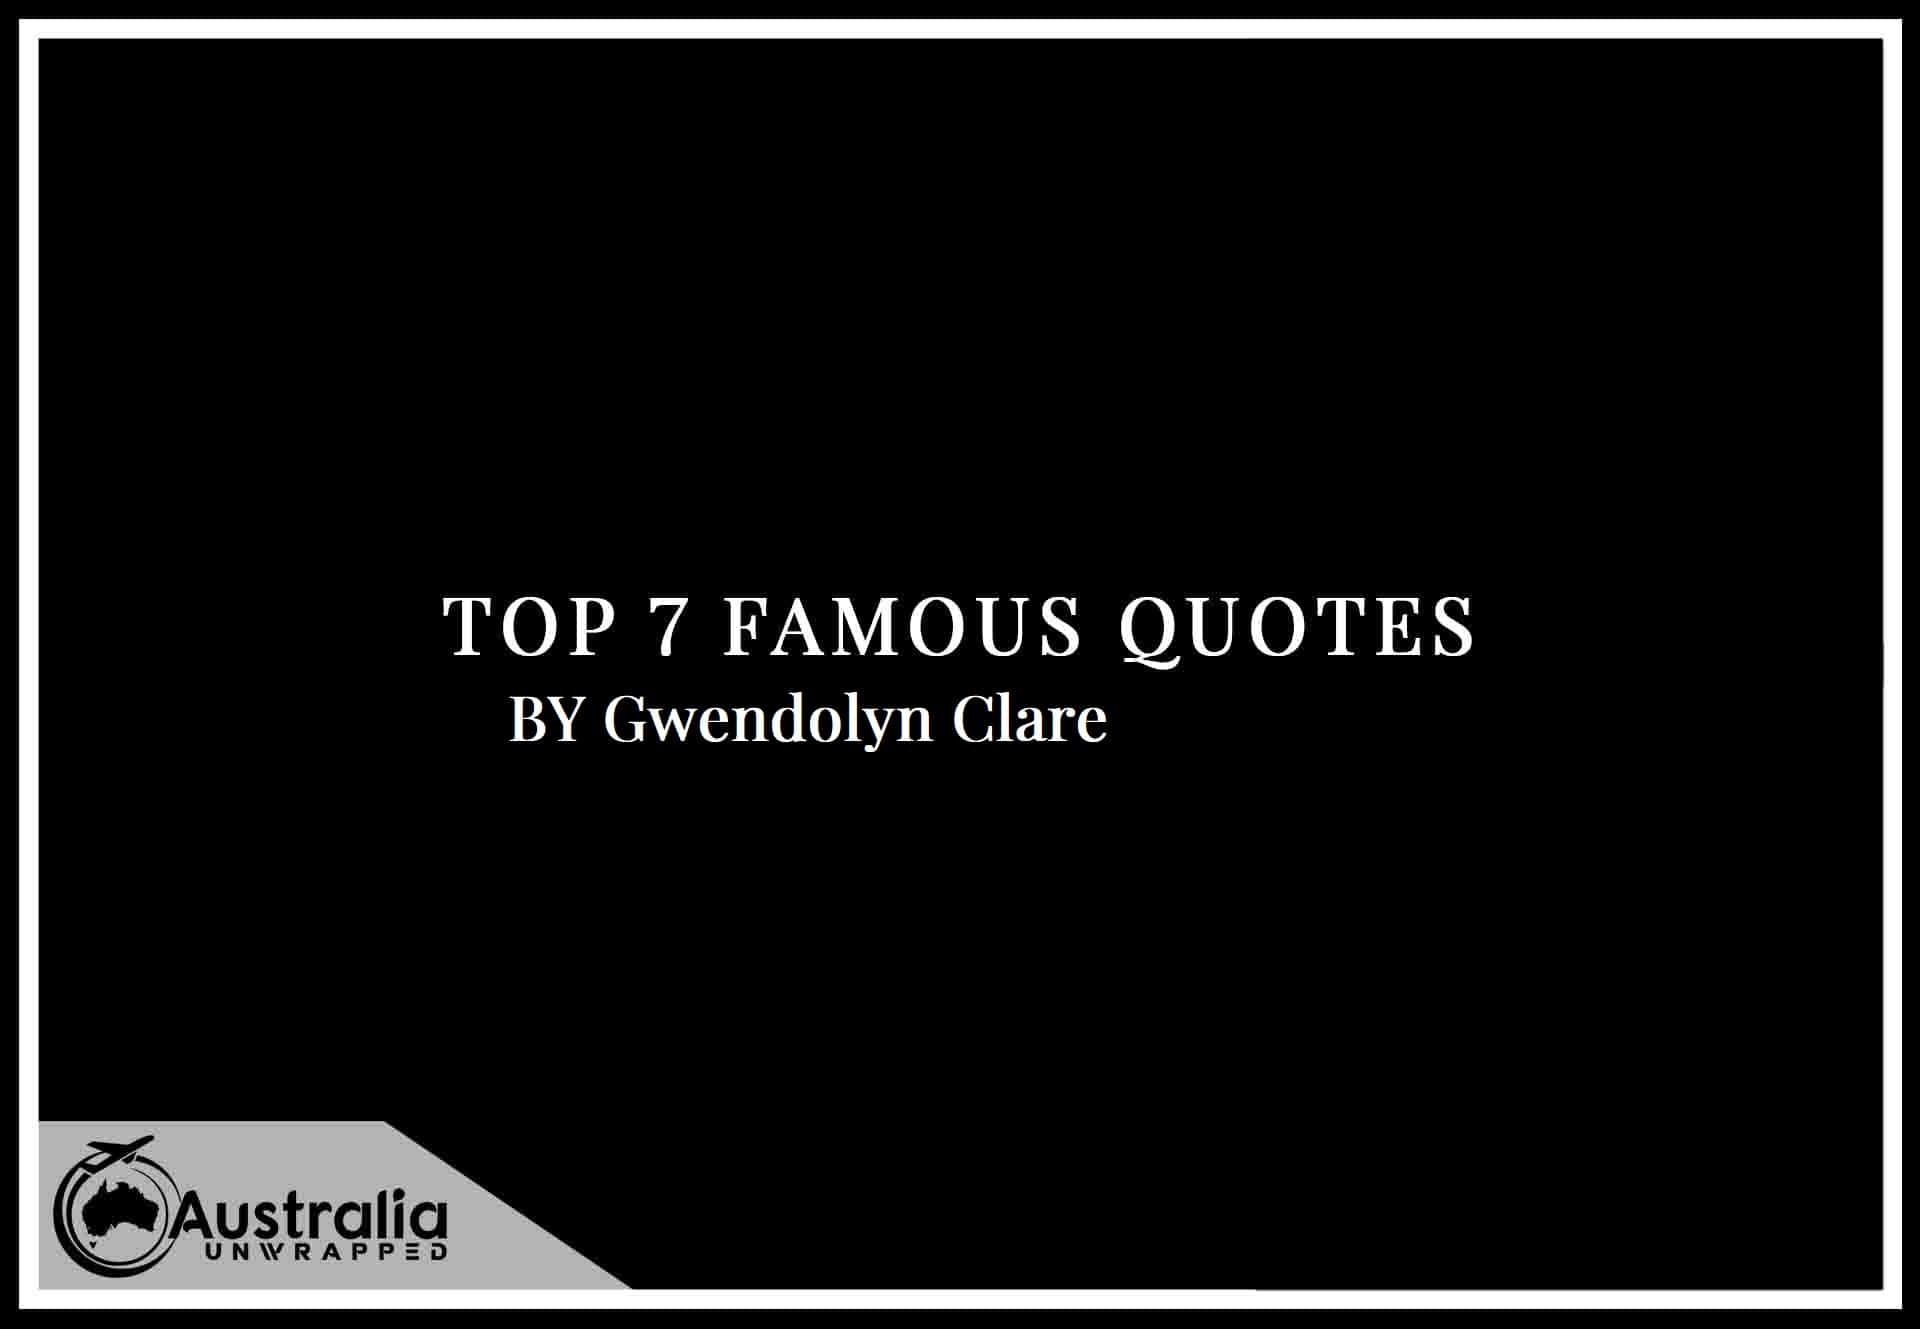 Top 7 Famous Quotes by Author Gwendolyn Clare